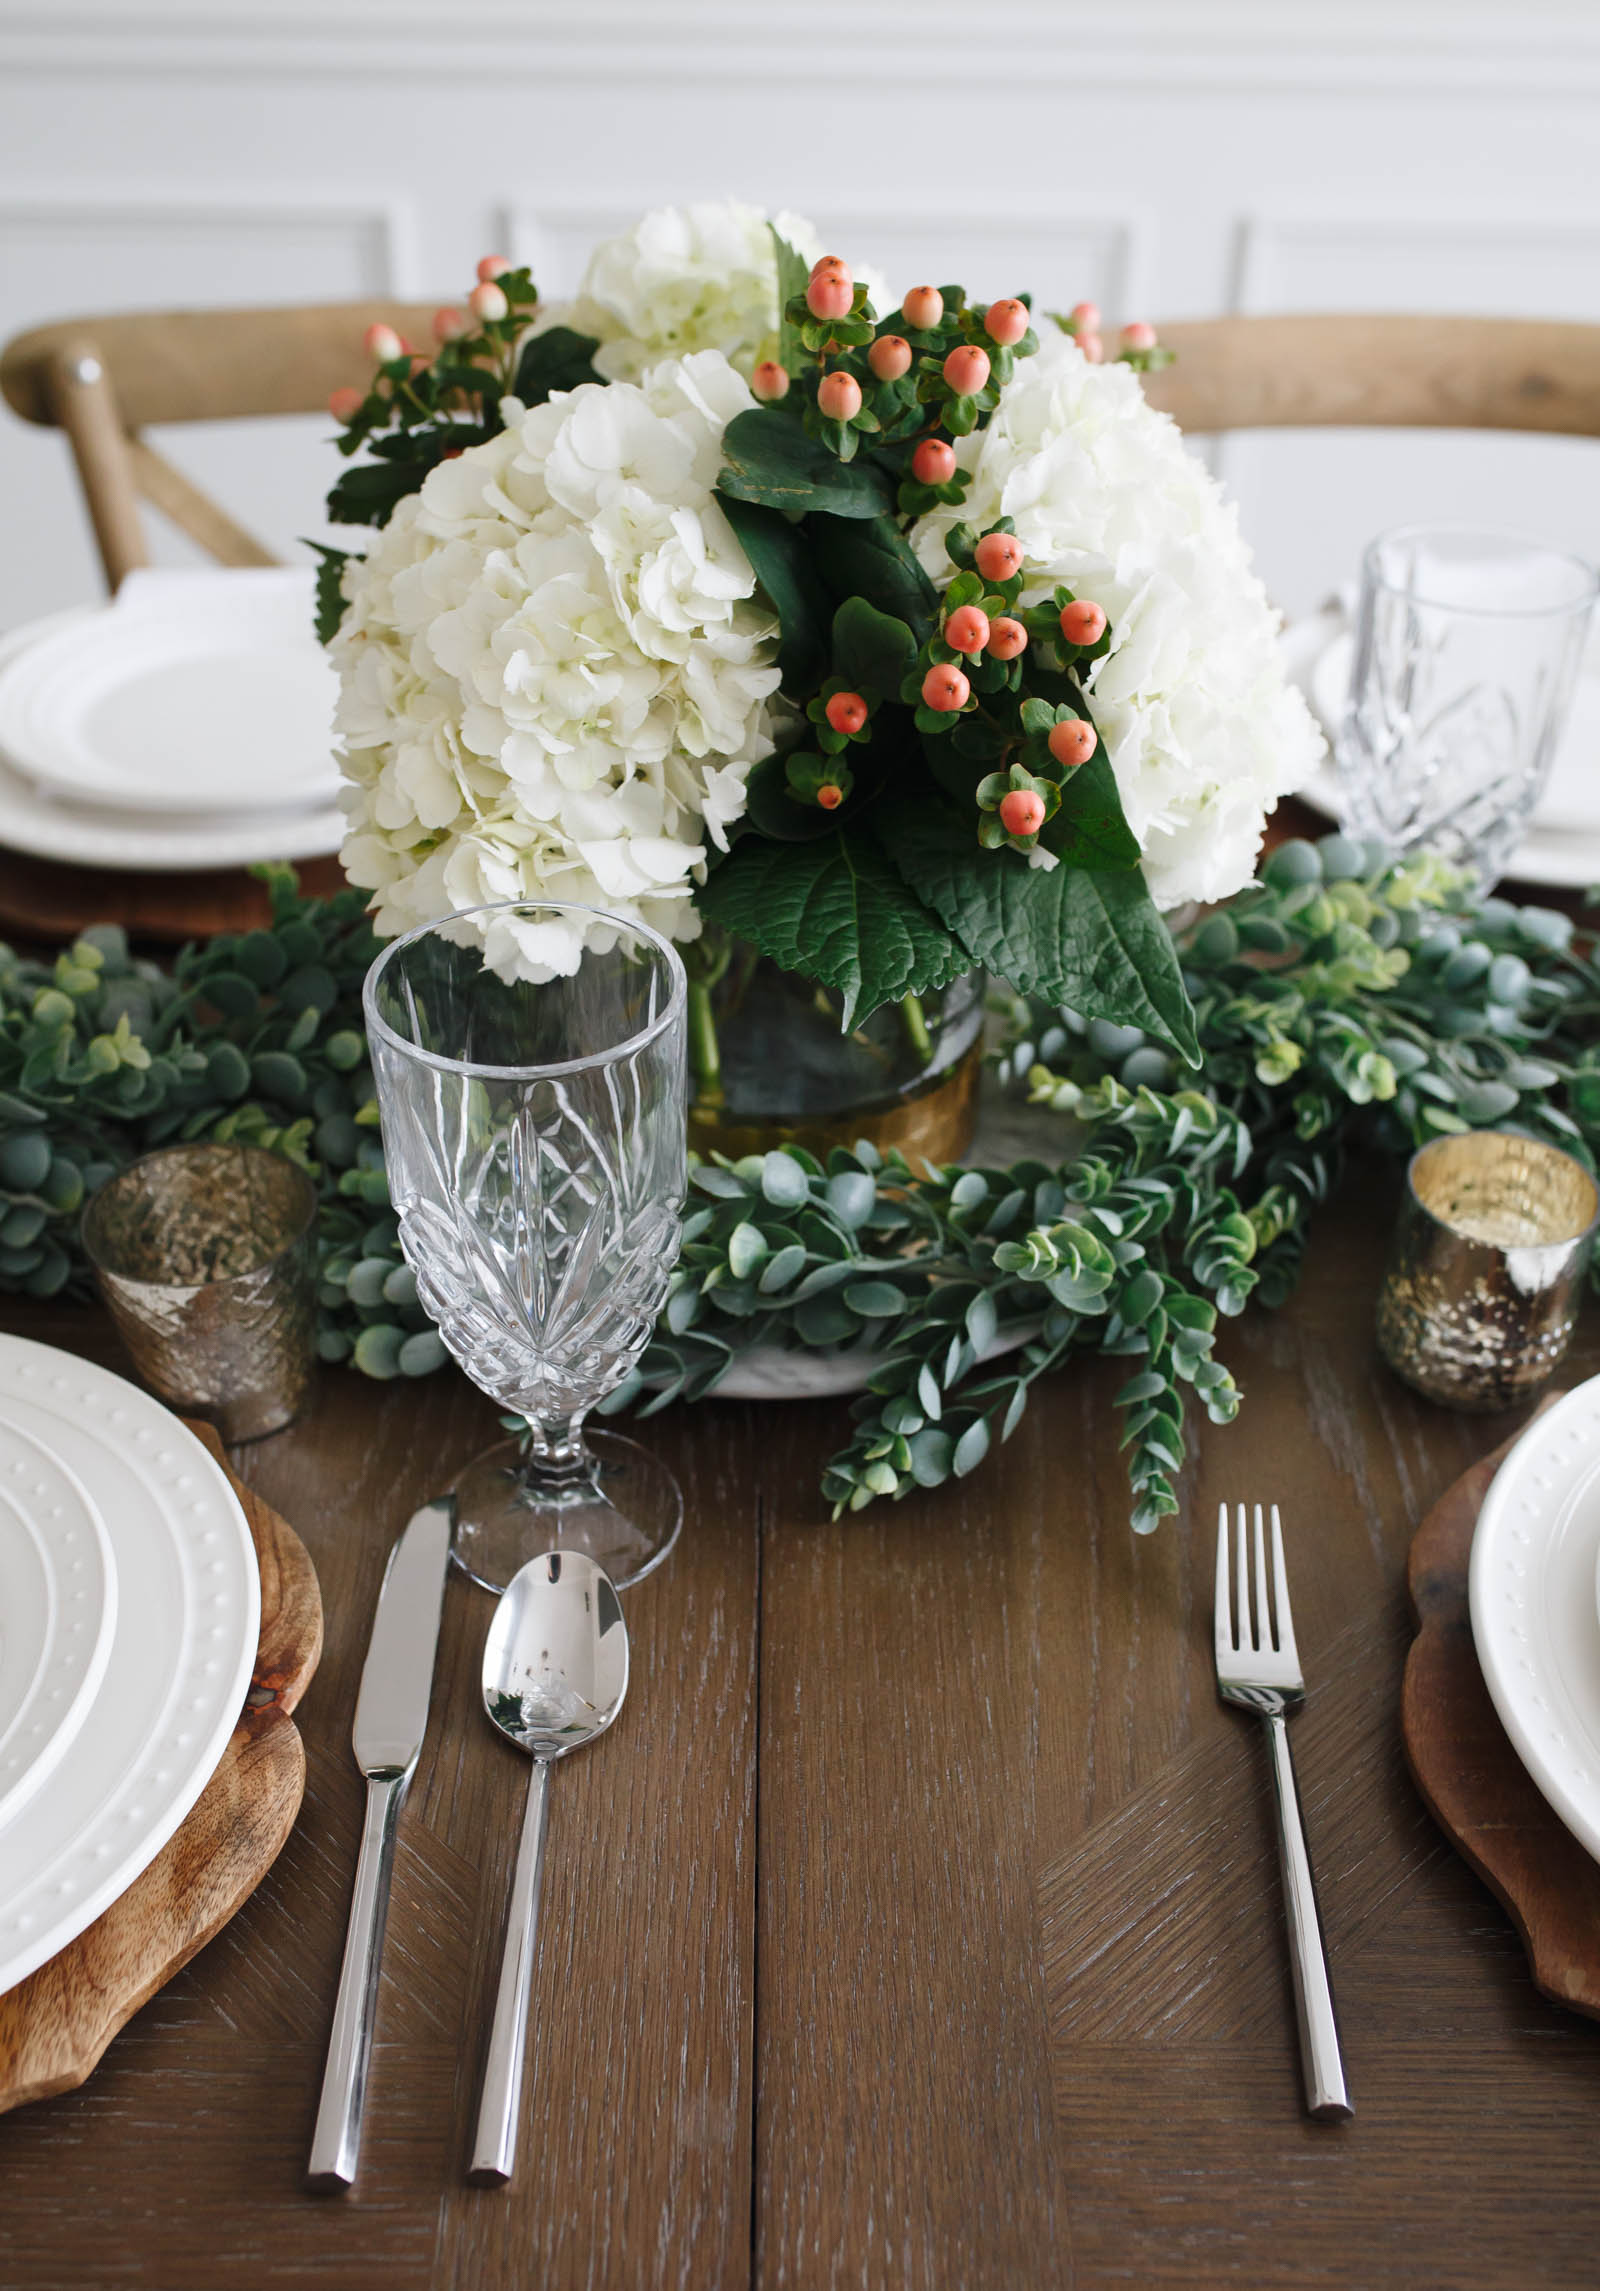 Holiday Tablescape 2017 | Winter Greenery | Hydrangeas | Winter Berries | World Market | White and Gold | via @maeamor